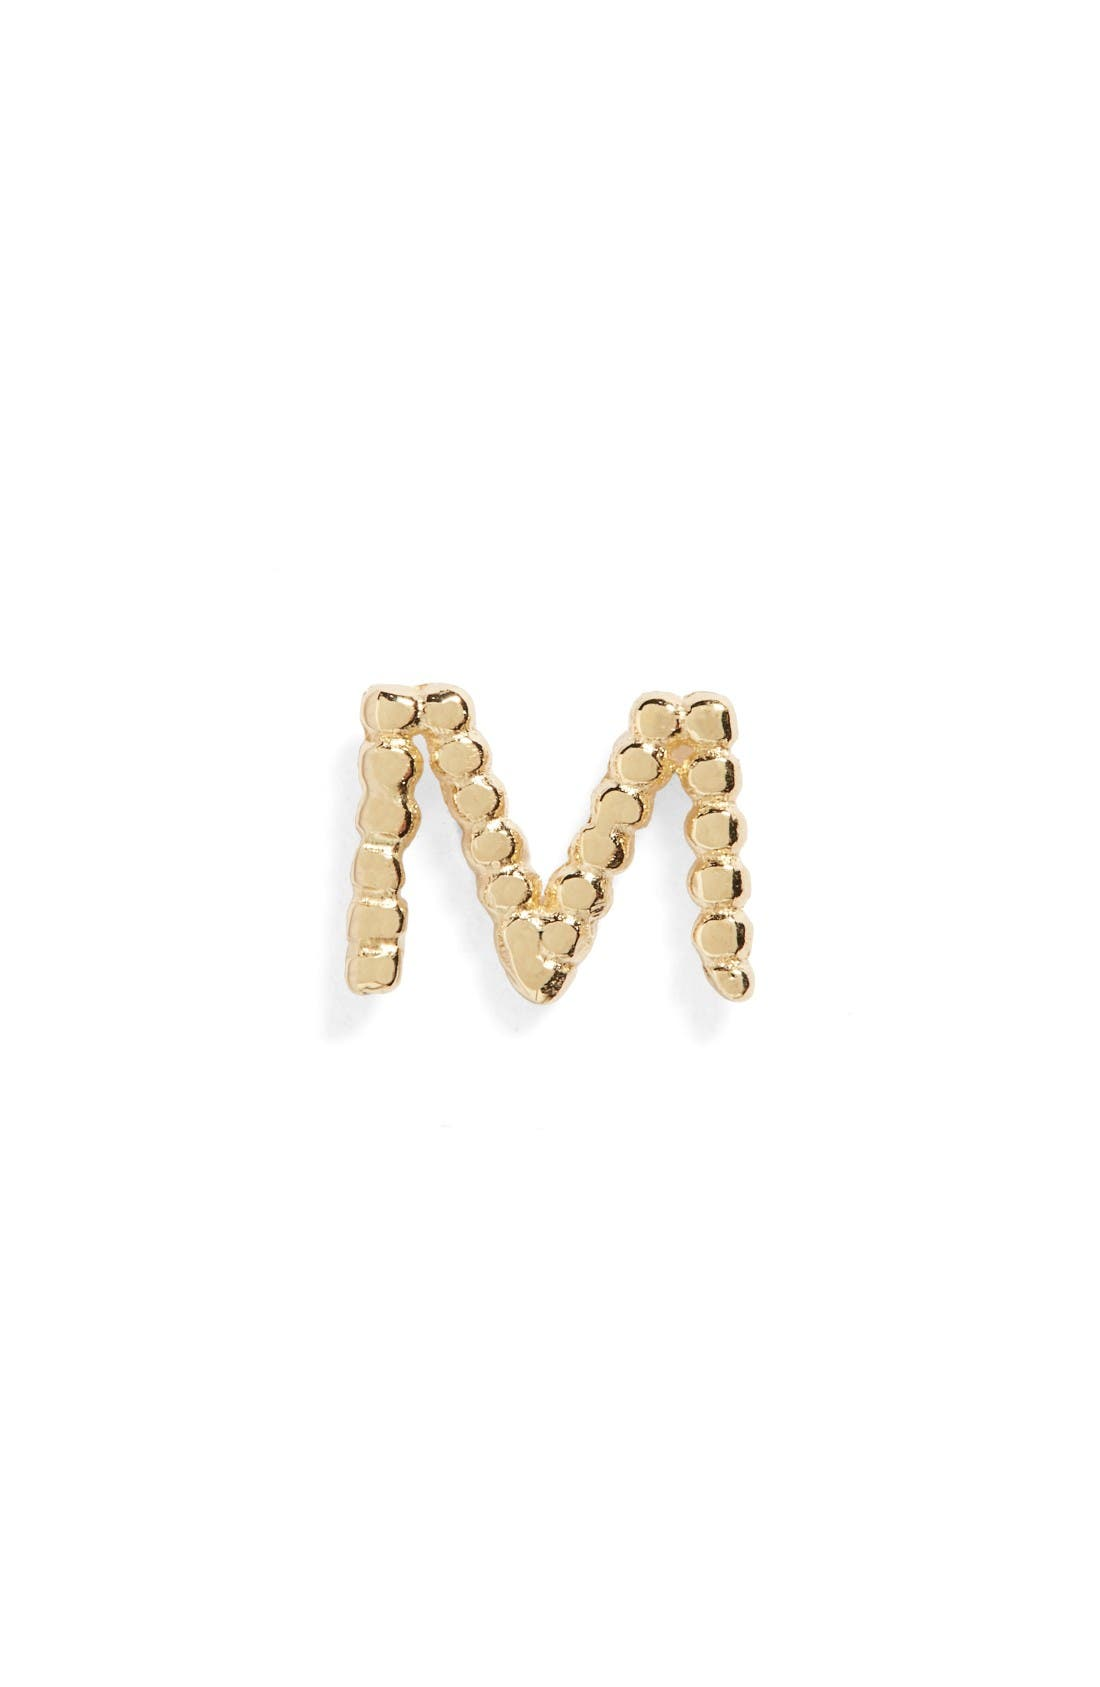 Alternate Image 1 Selected - Bony Levy Single Initial Stud Earring (Nordstrom Exclusive)